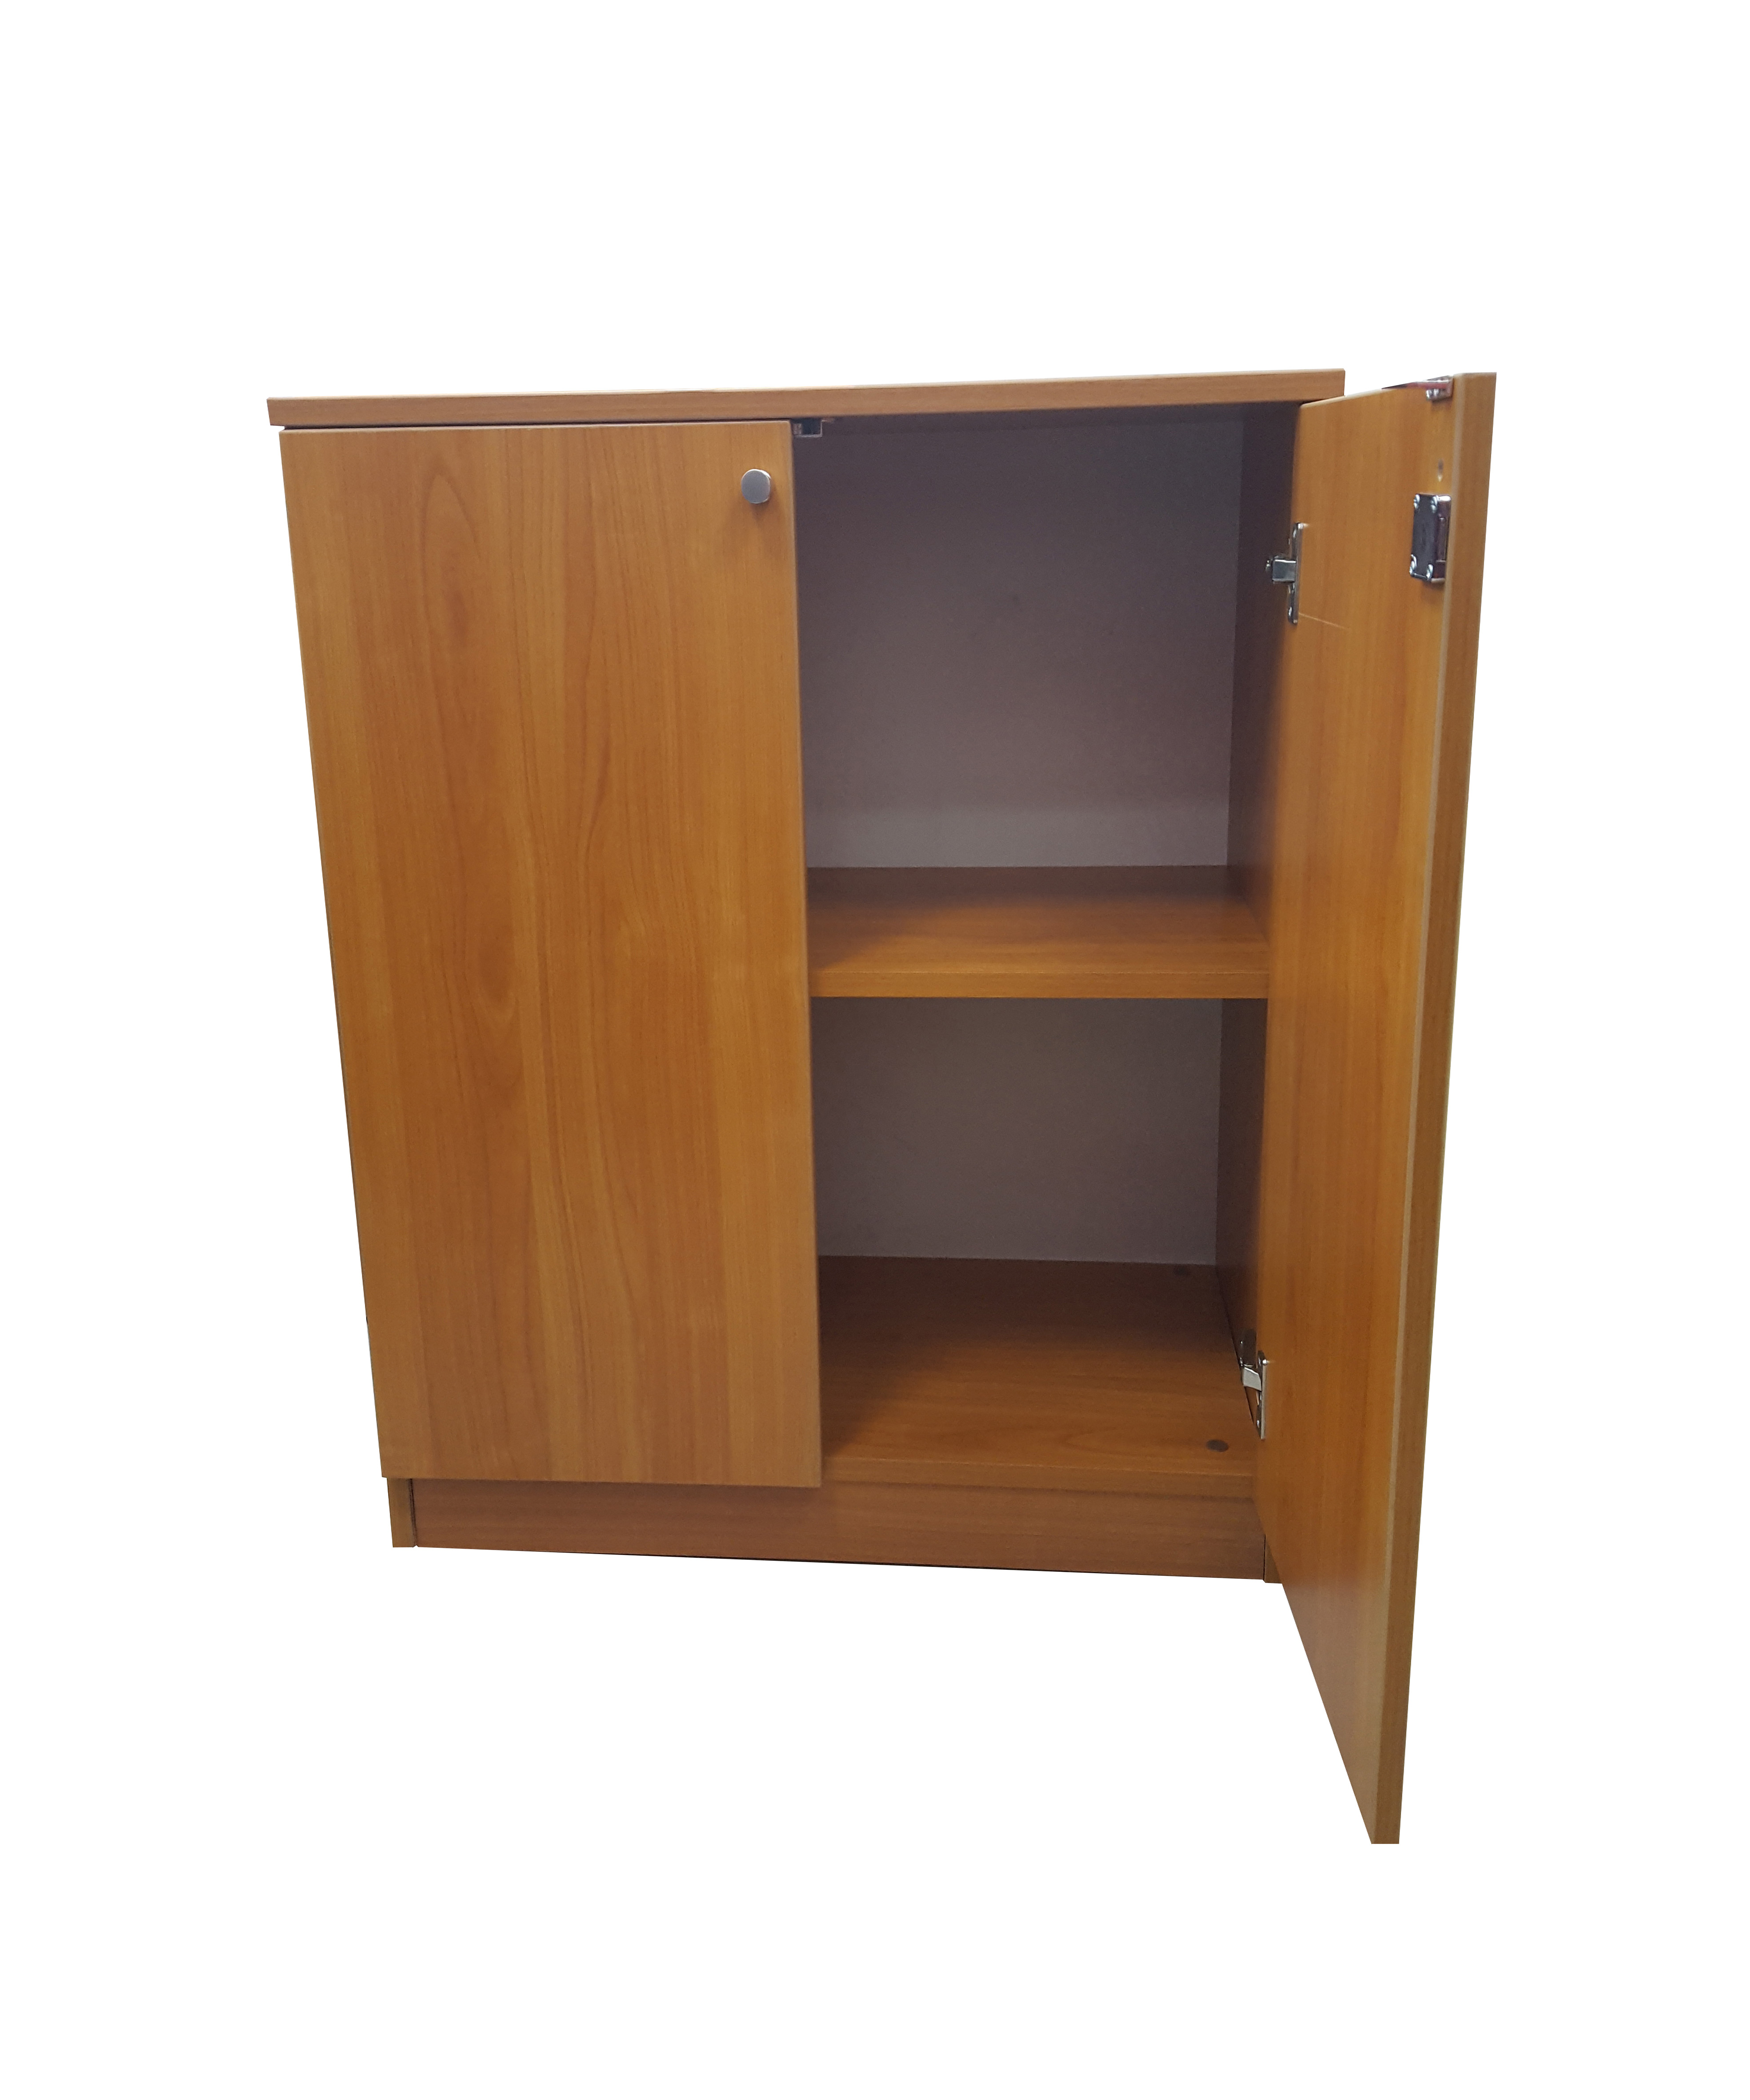 Cabinet 87 x 74 x 40 with adjustable shelves for Sideboard 90 x 40